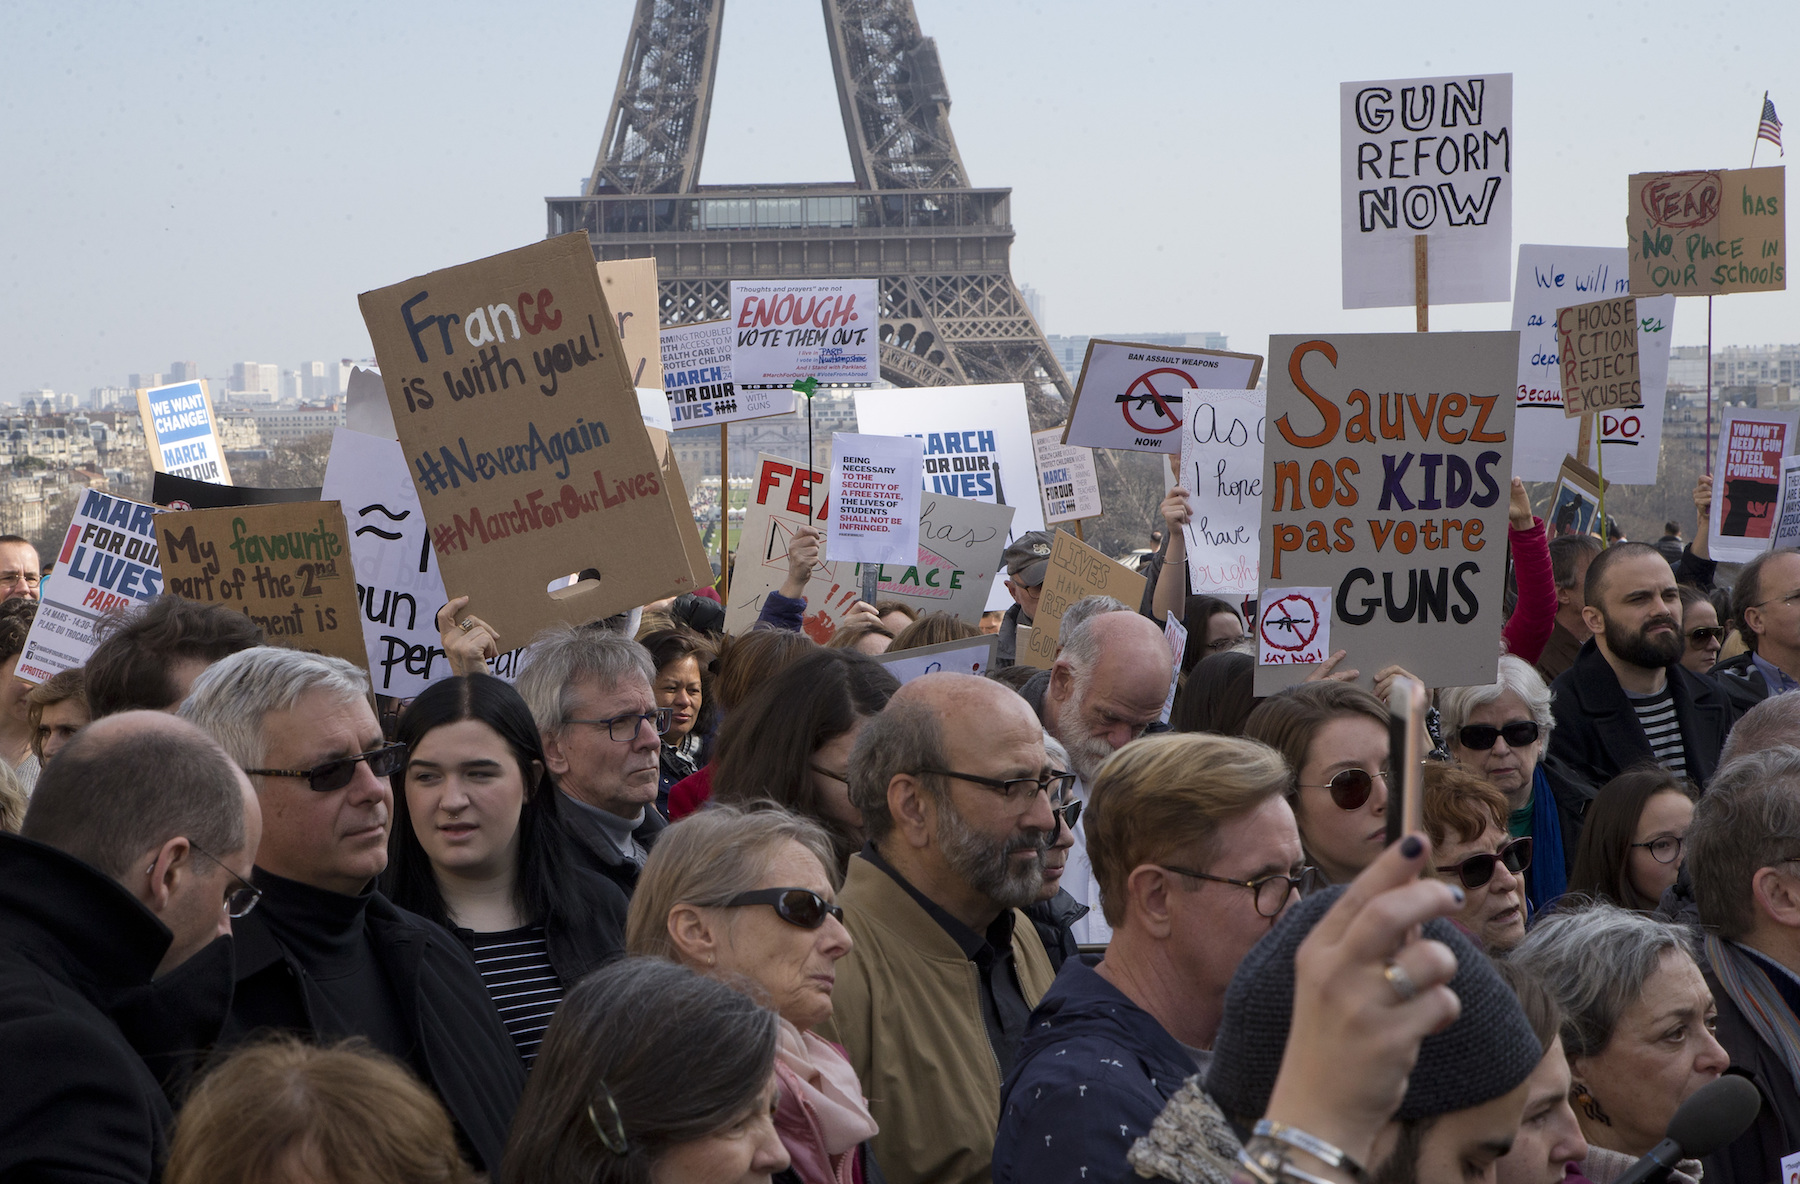 "<div class=""meta image-caption""><div class=""origin-logo origin-image ap""><span>AP</span></div><span class=""caption-text"">People hold banners during the ""March For Our Lives"" event in Paris, France, Saturday, March 24, 2018. (AP Photo/Michel Euler)</span></div>"